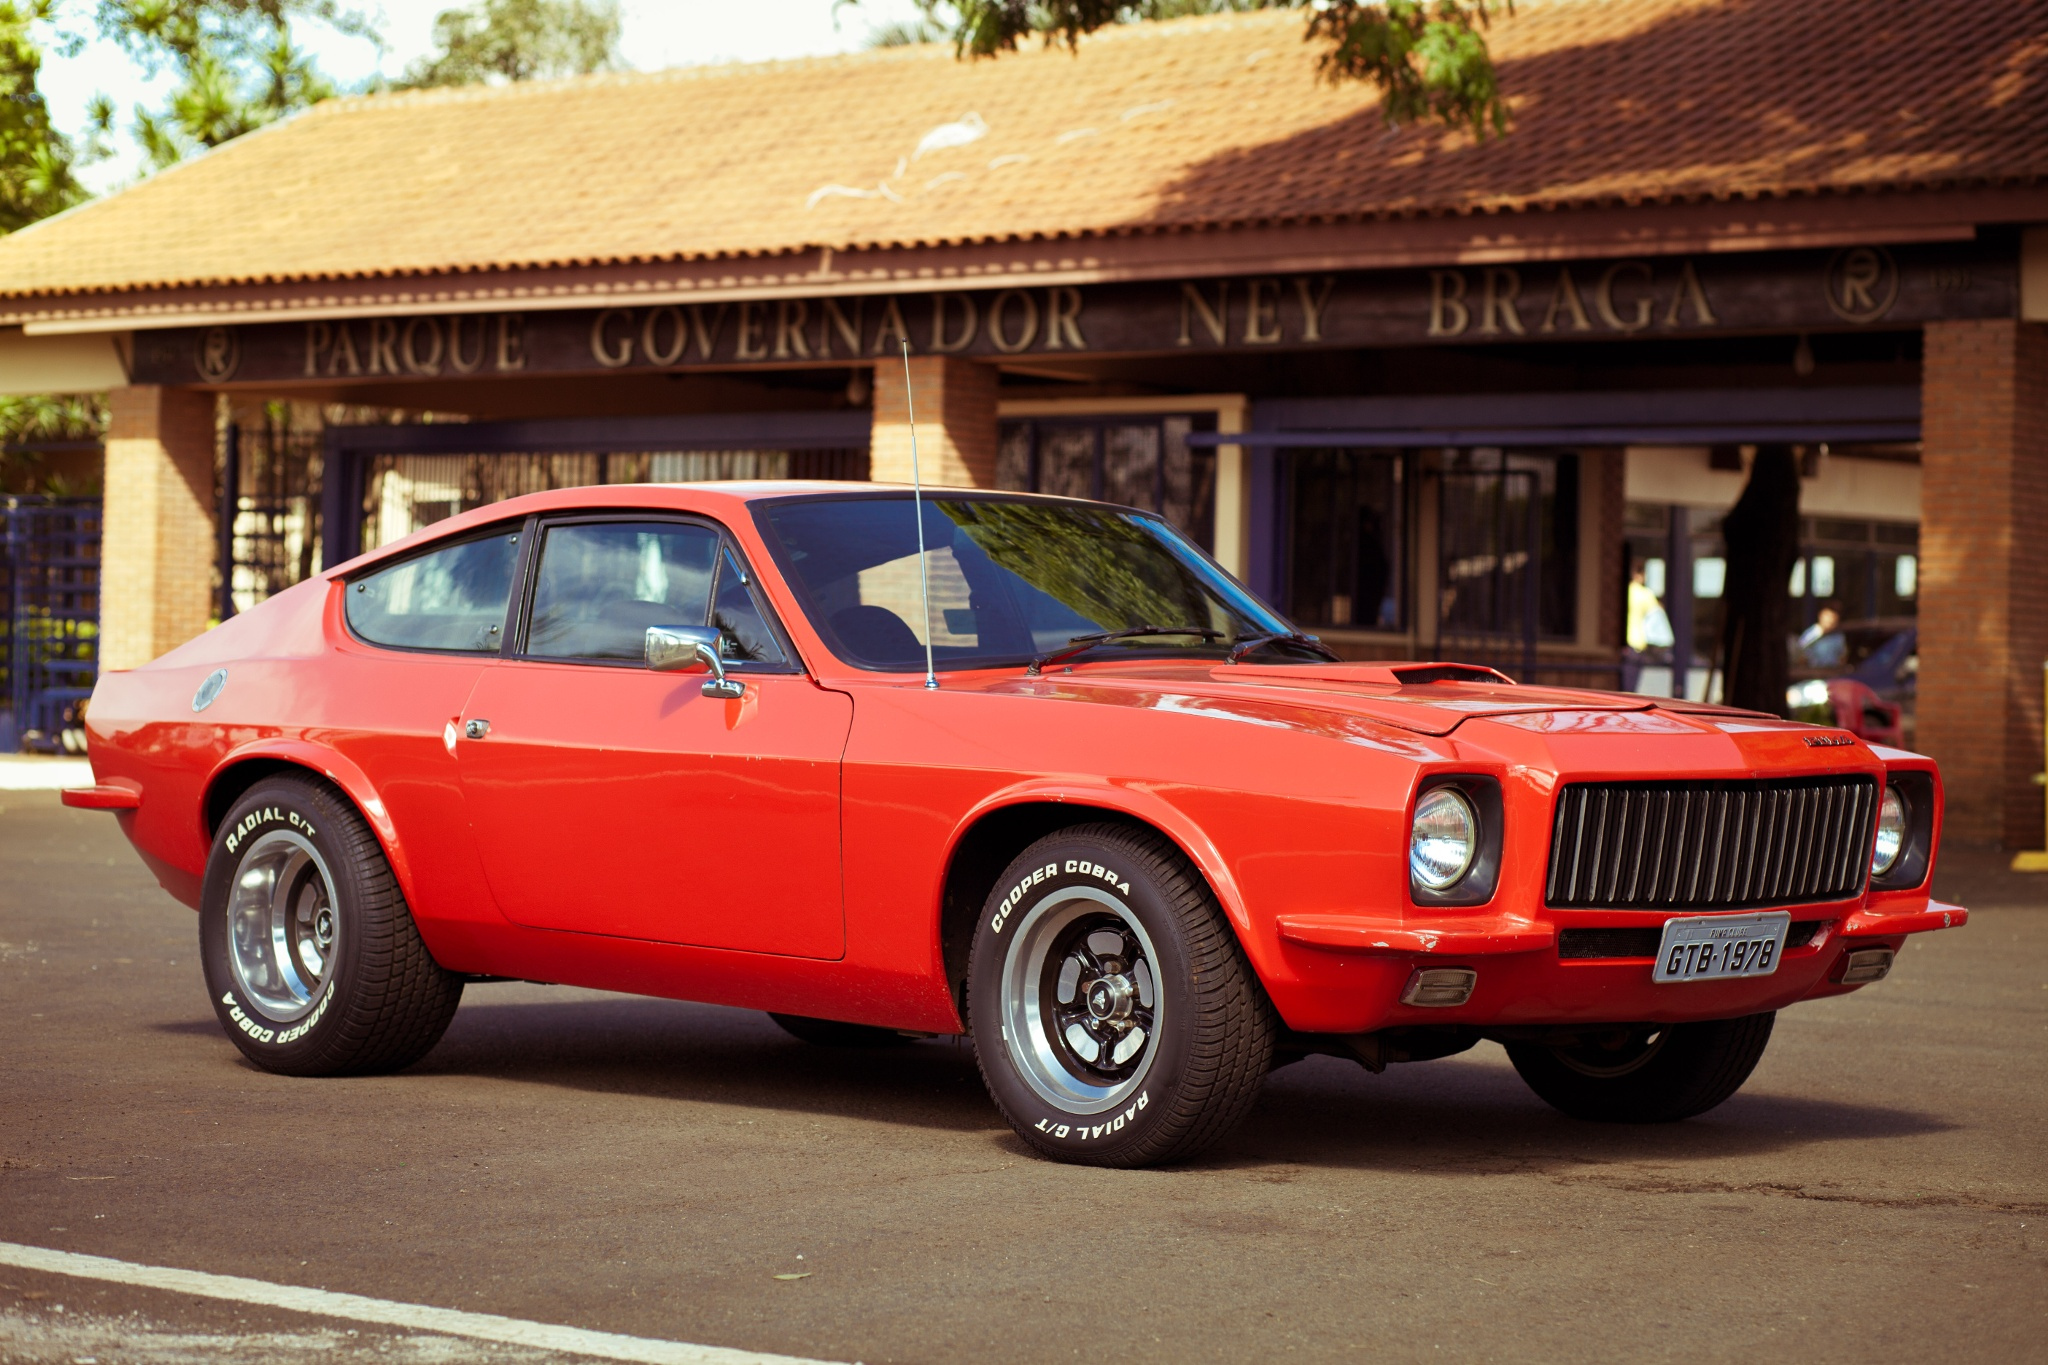 What about this? The ultimate brazilian muscle car, Puma GTB